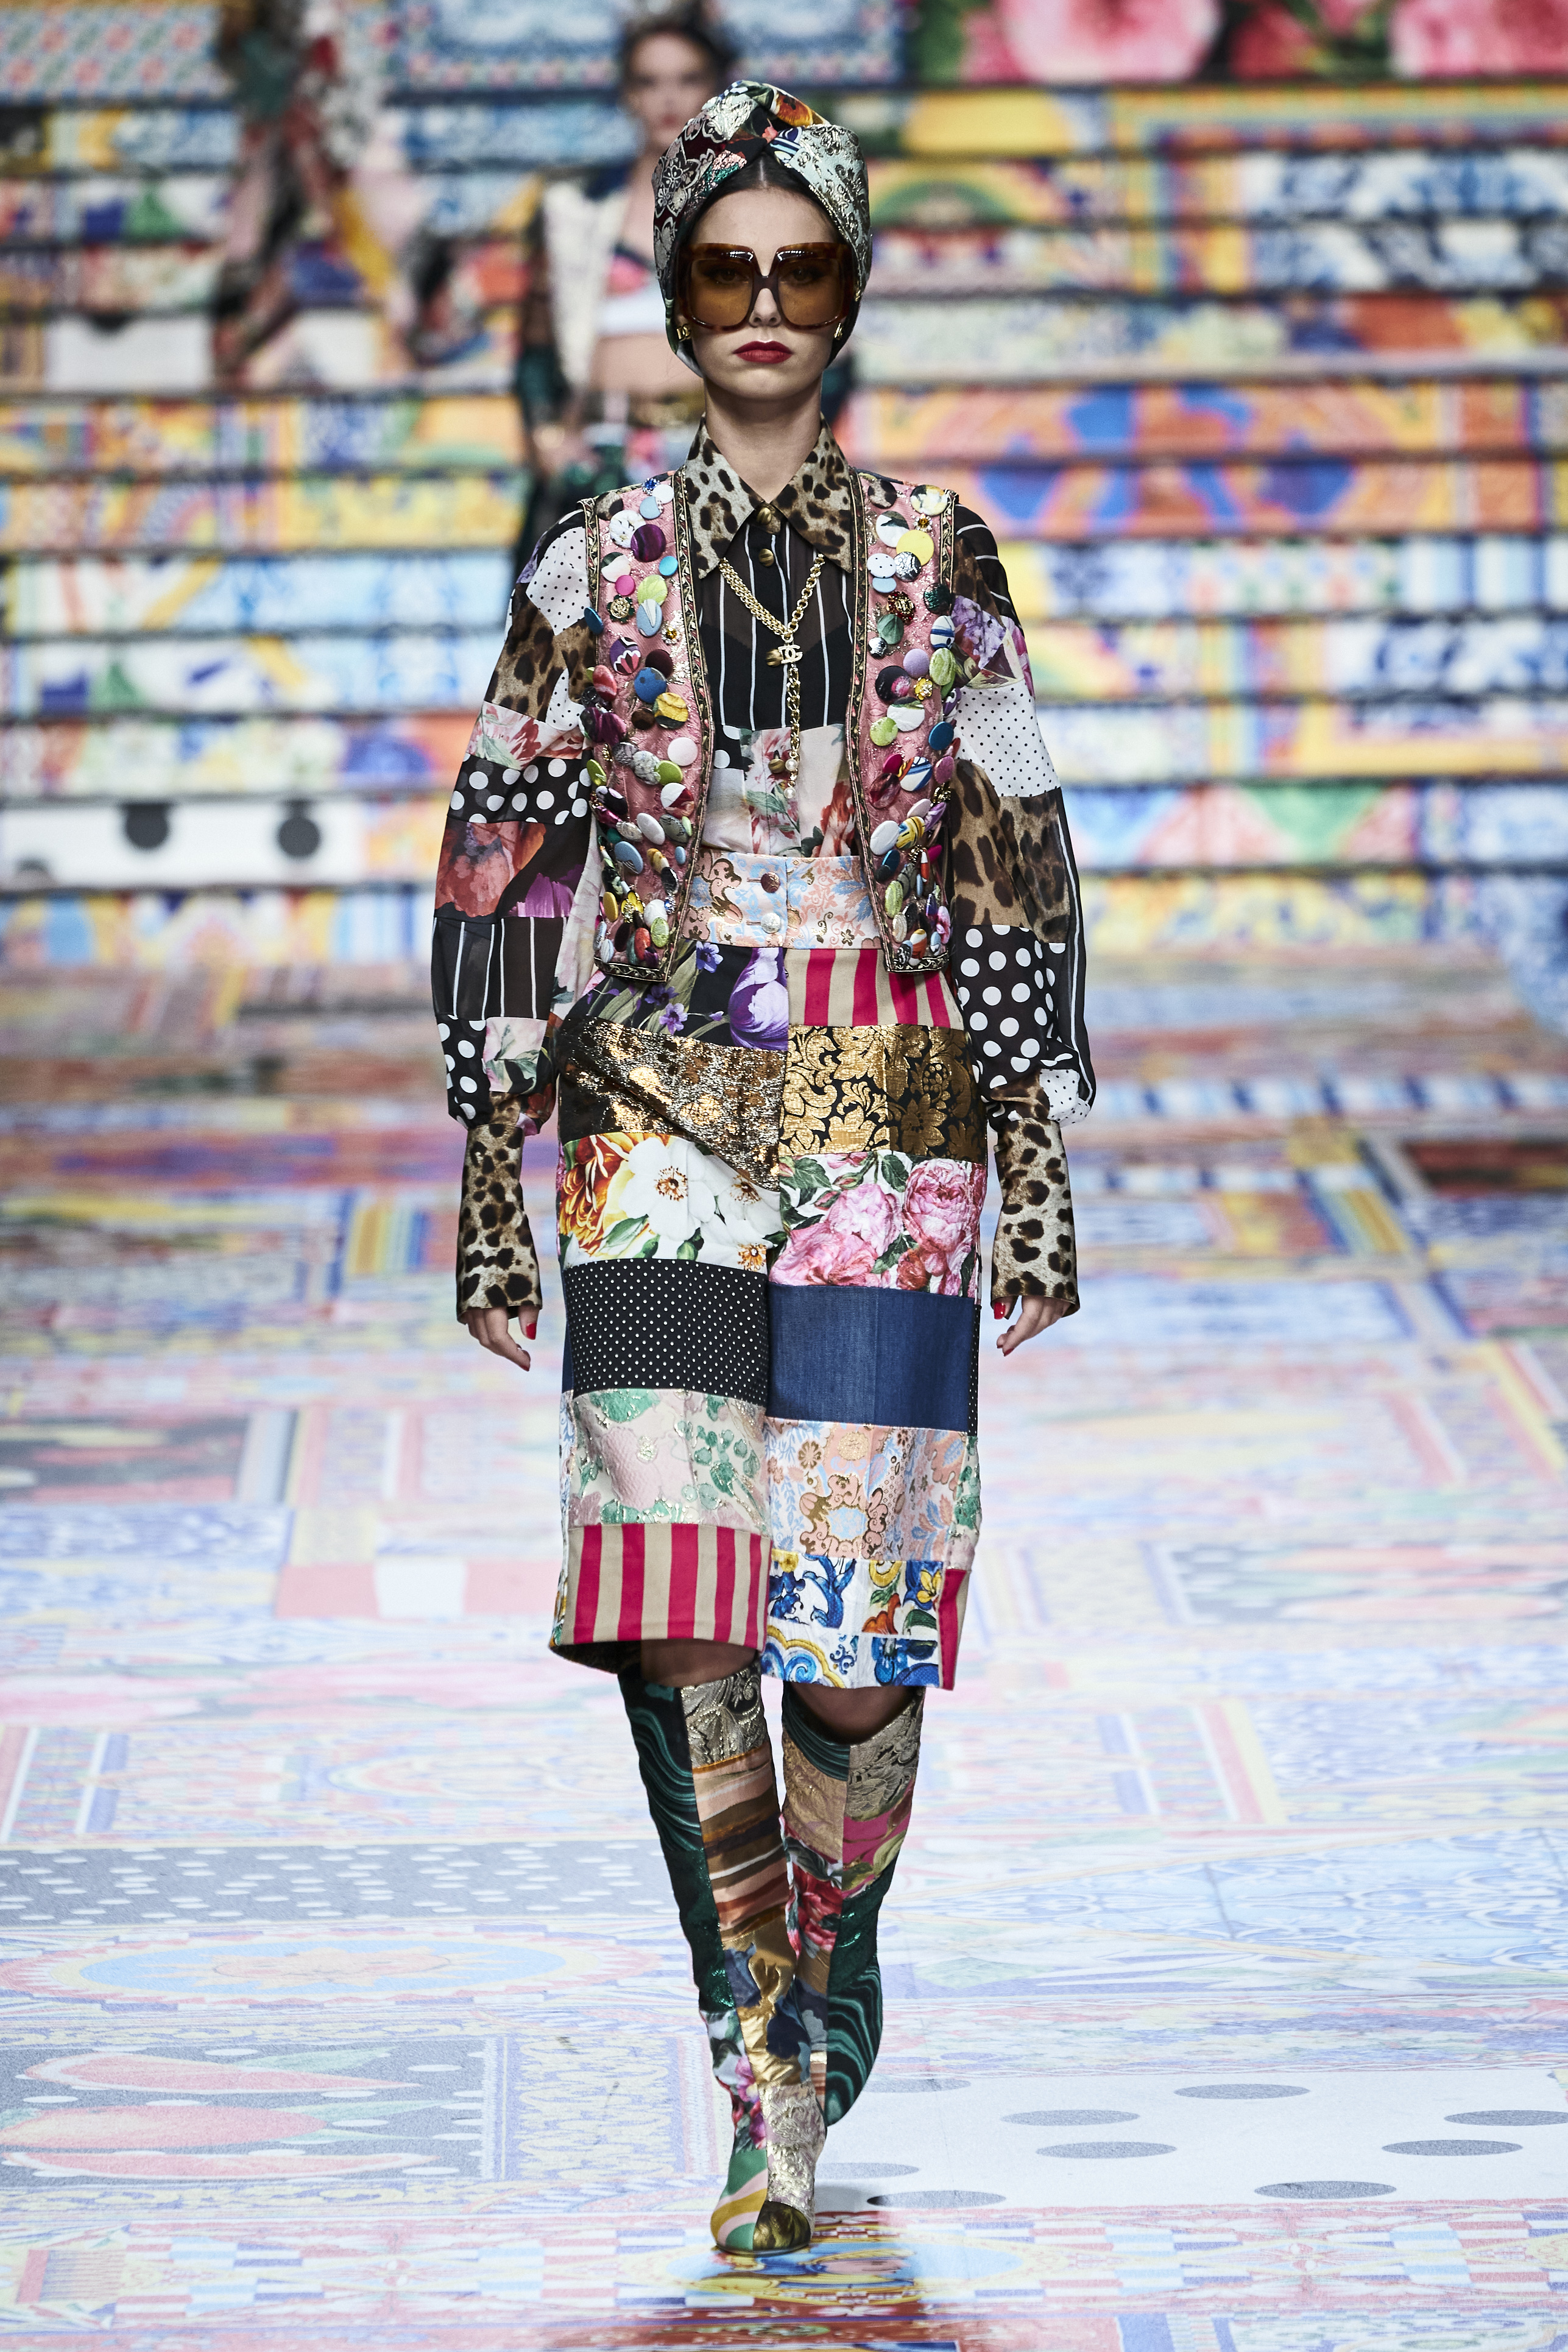 Prints galore: Dolce & Gabbana and Versace's Spring/Summer '21 collection (фото 1)